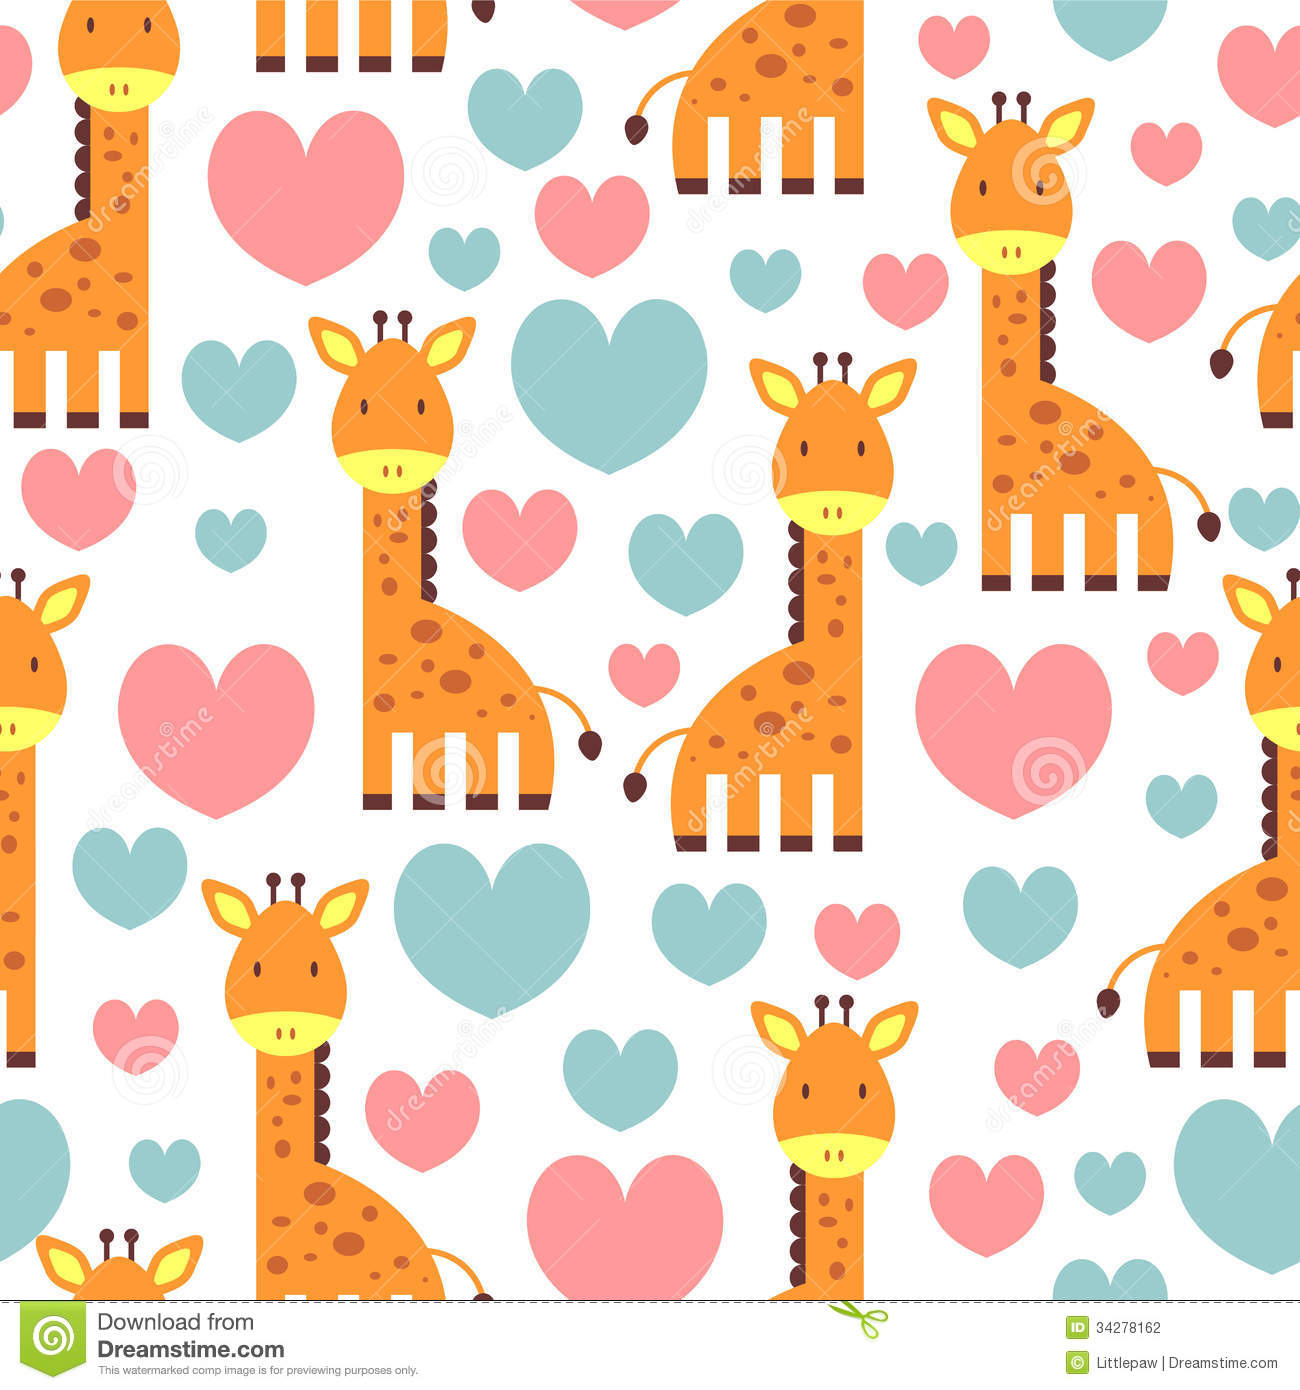 Collection of Cute Giraffe Wallpaper on HDWallpapers